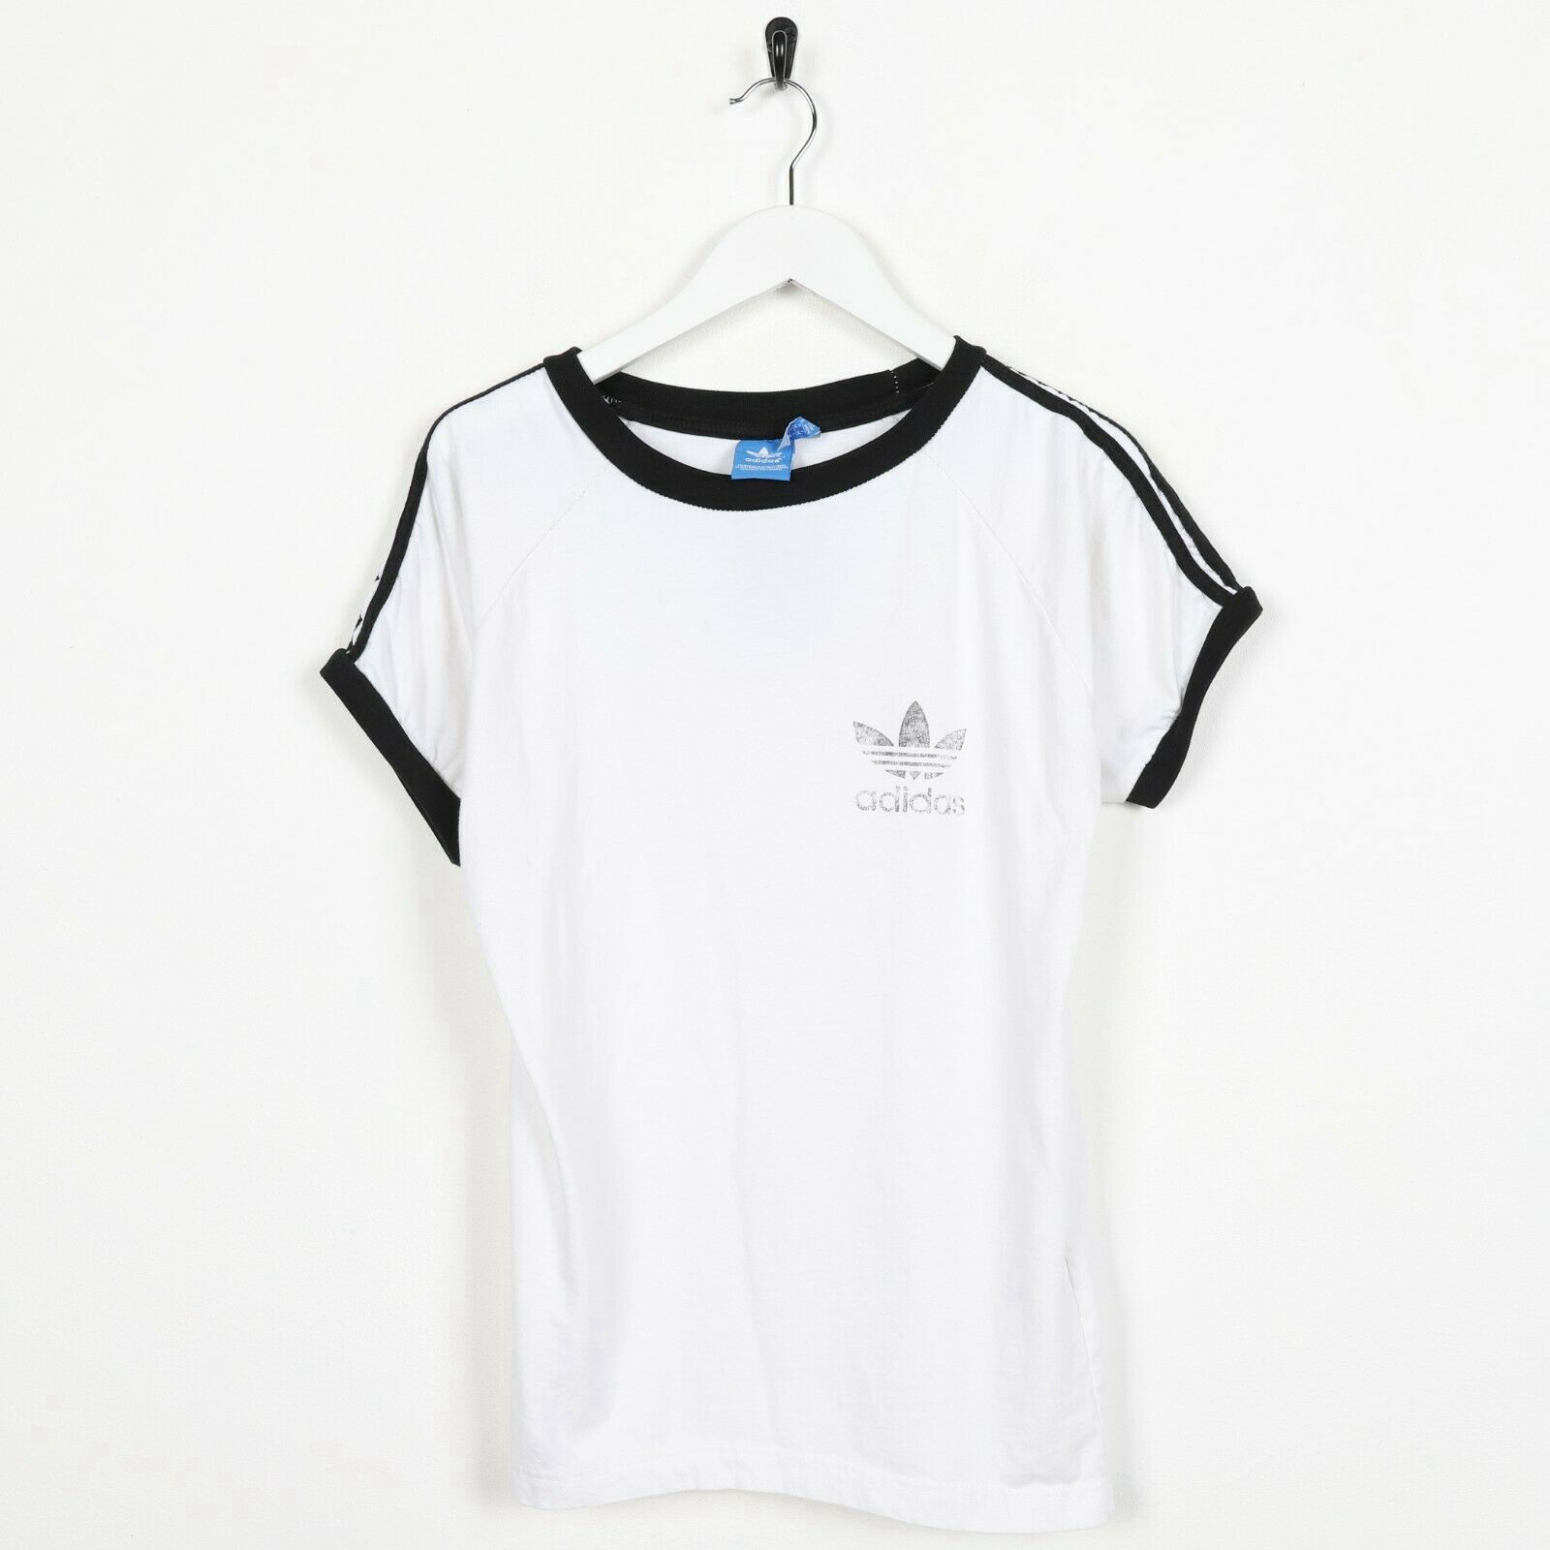 Unisex Vintage ADIDAS ORIGINALS Small Logo T Shirt Tee White | Medium M